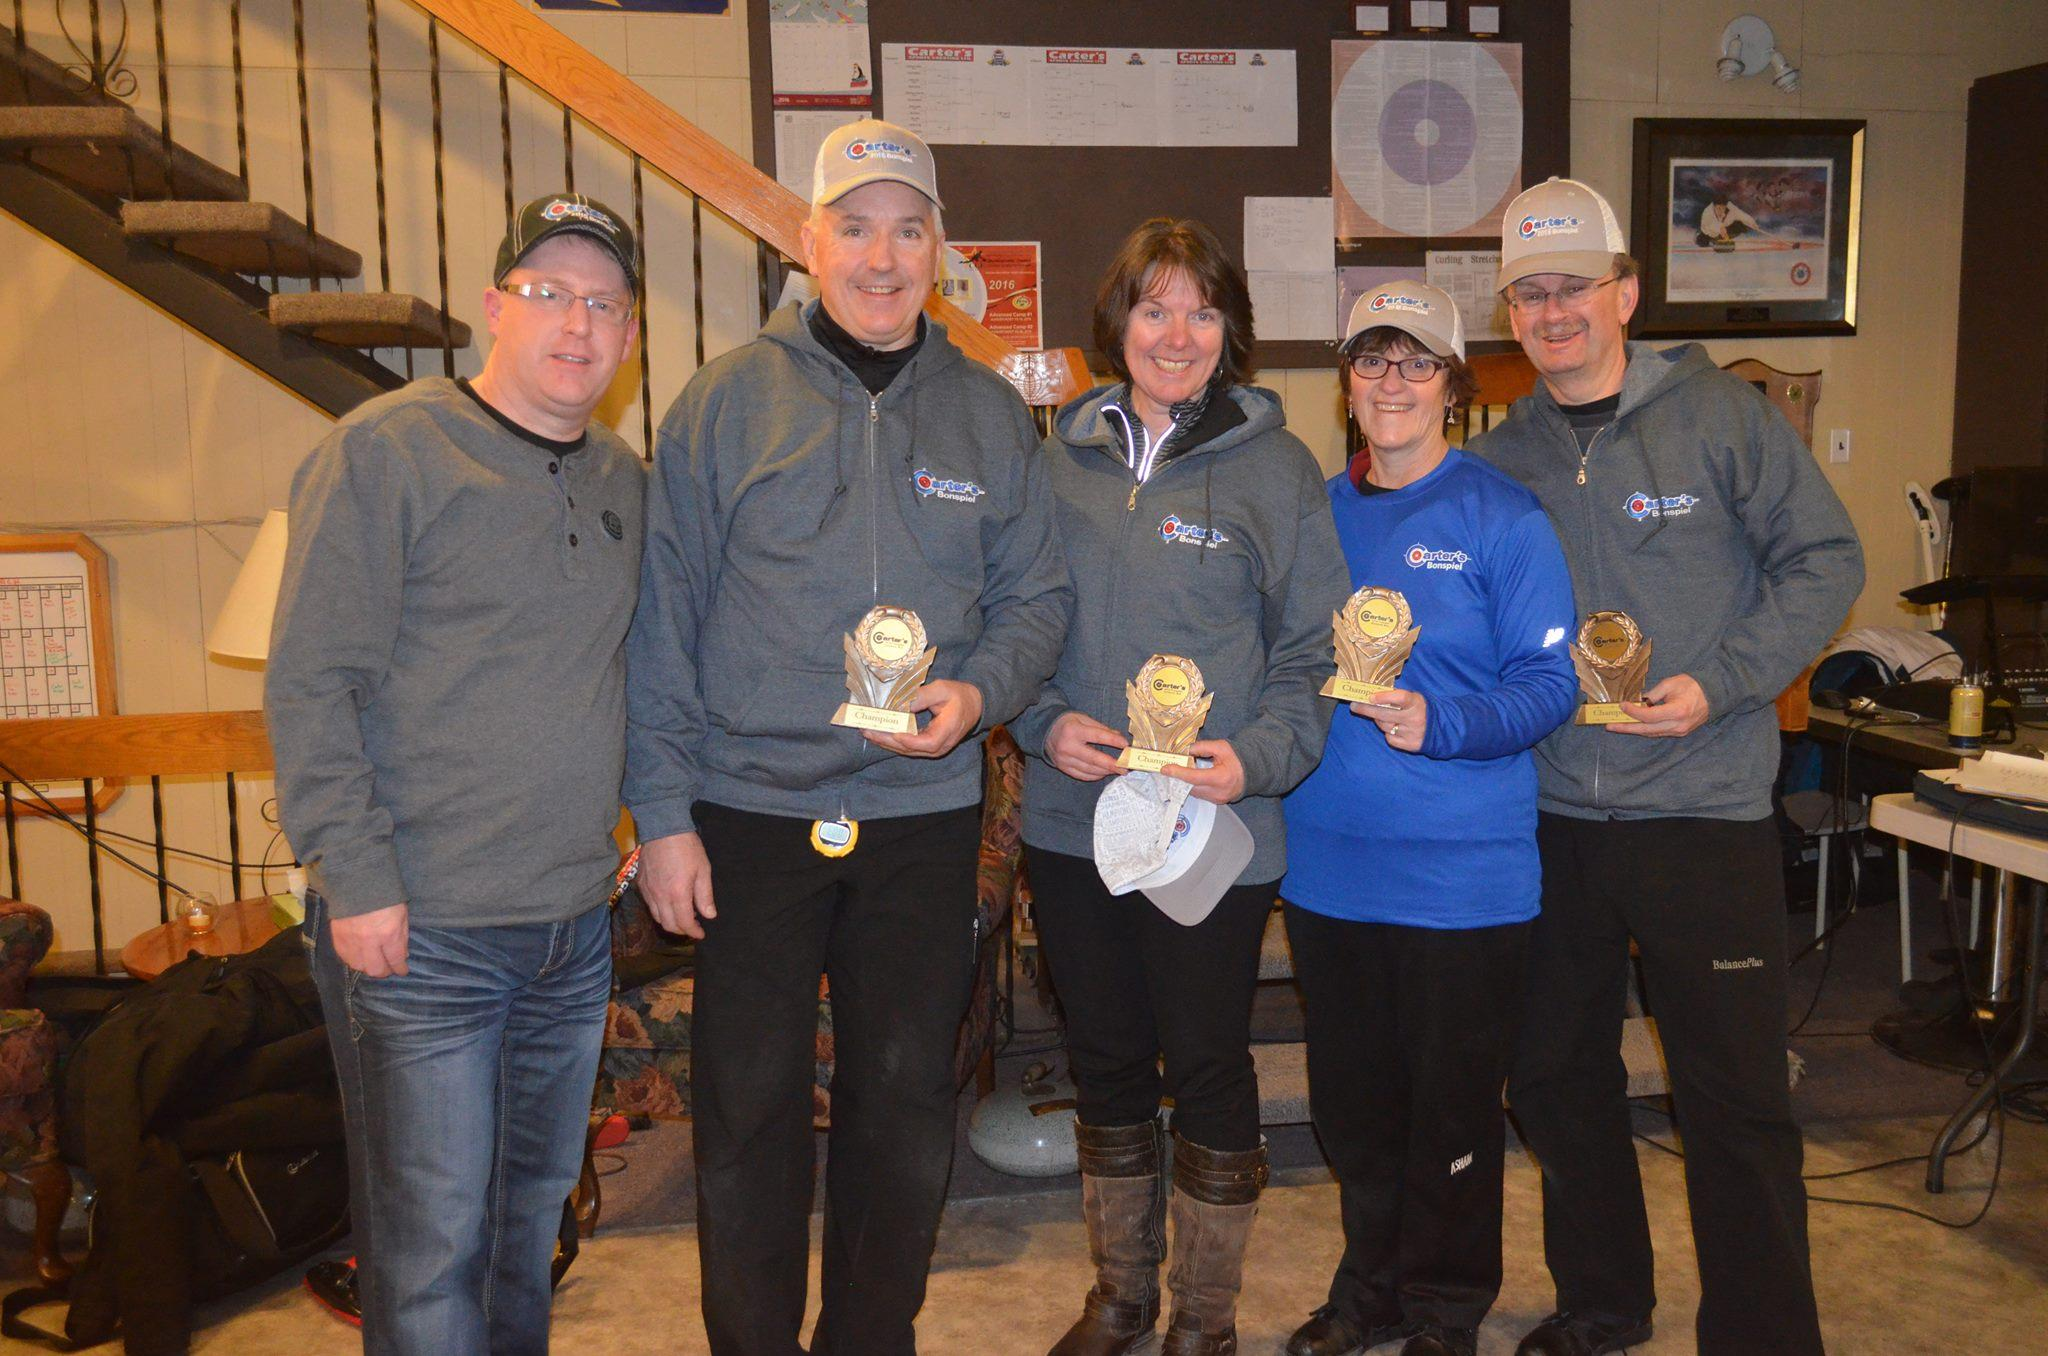 Carter's Sports Cresting Bonspiel 2016 Winners